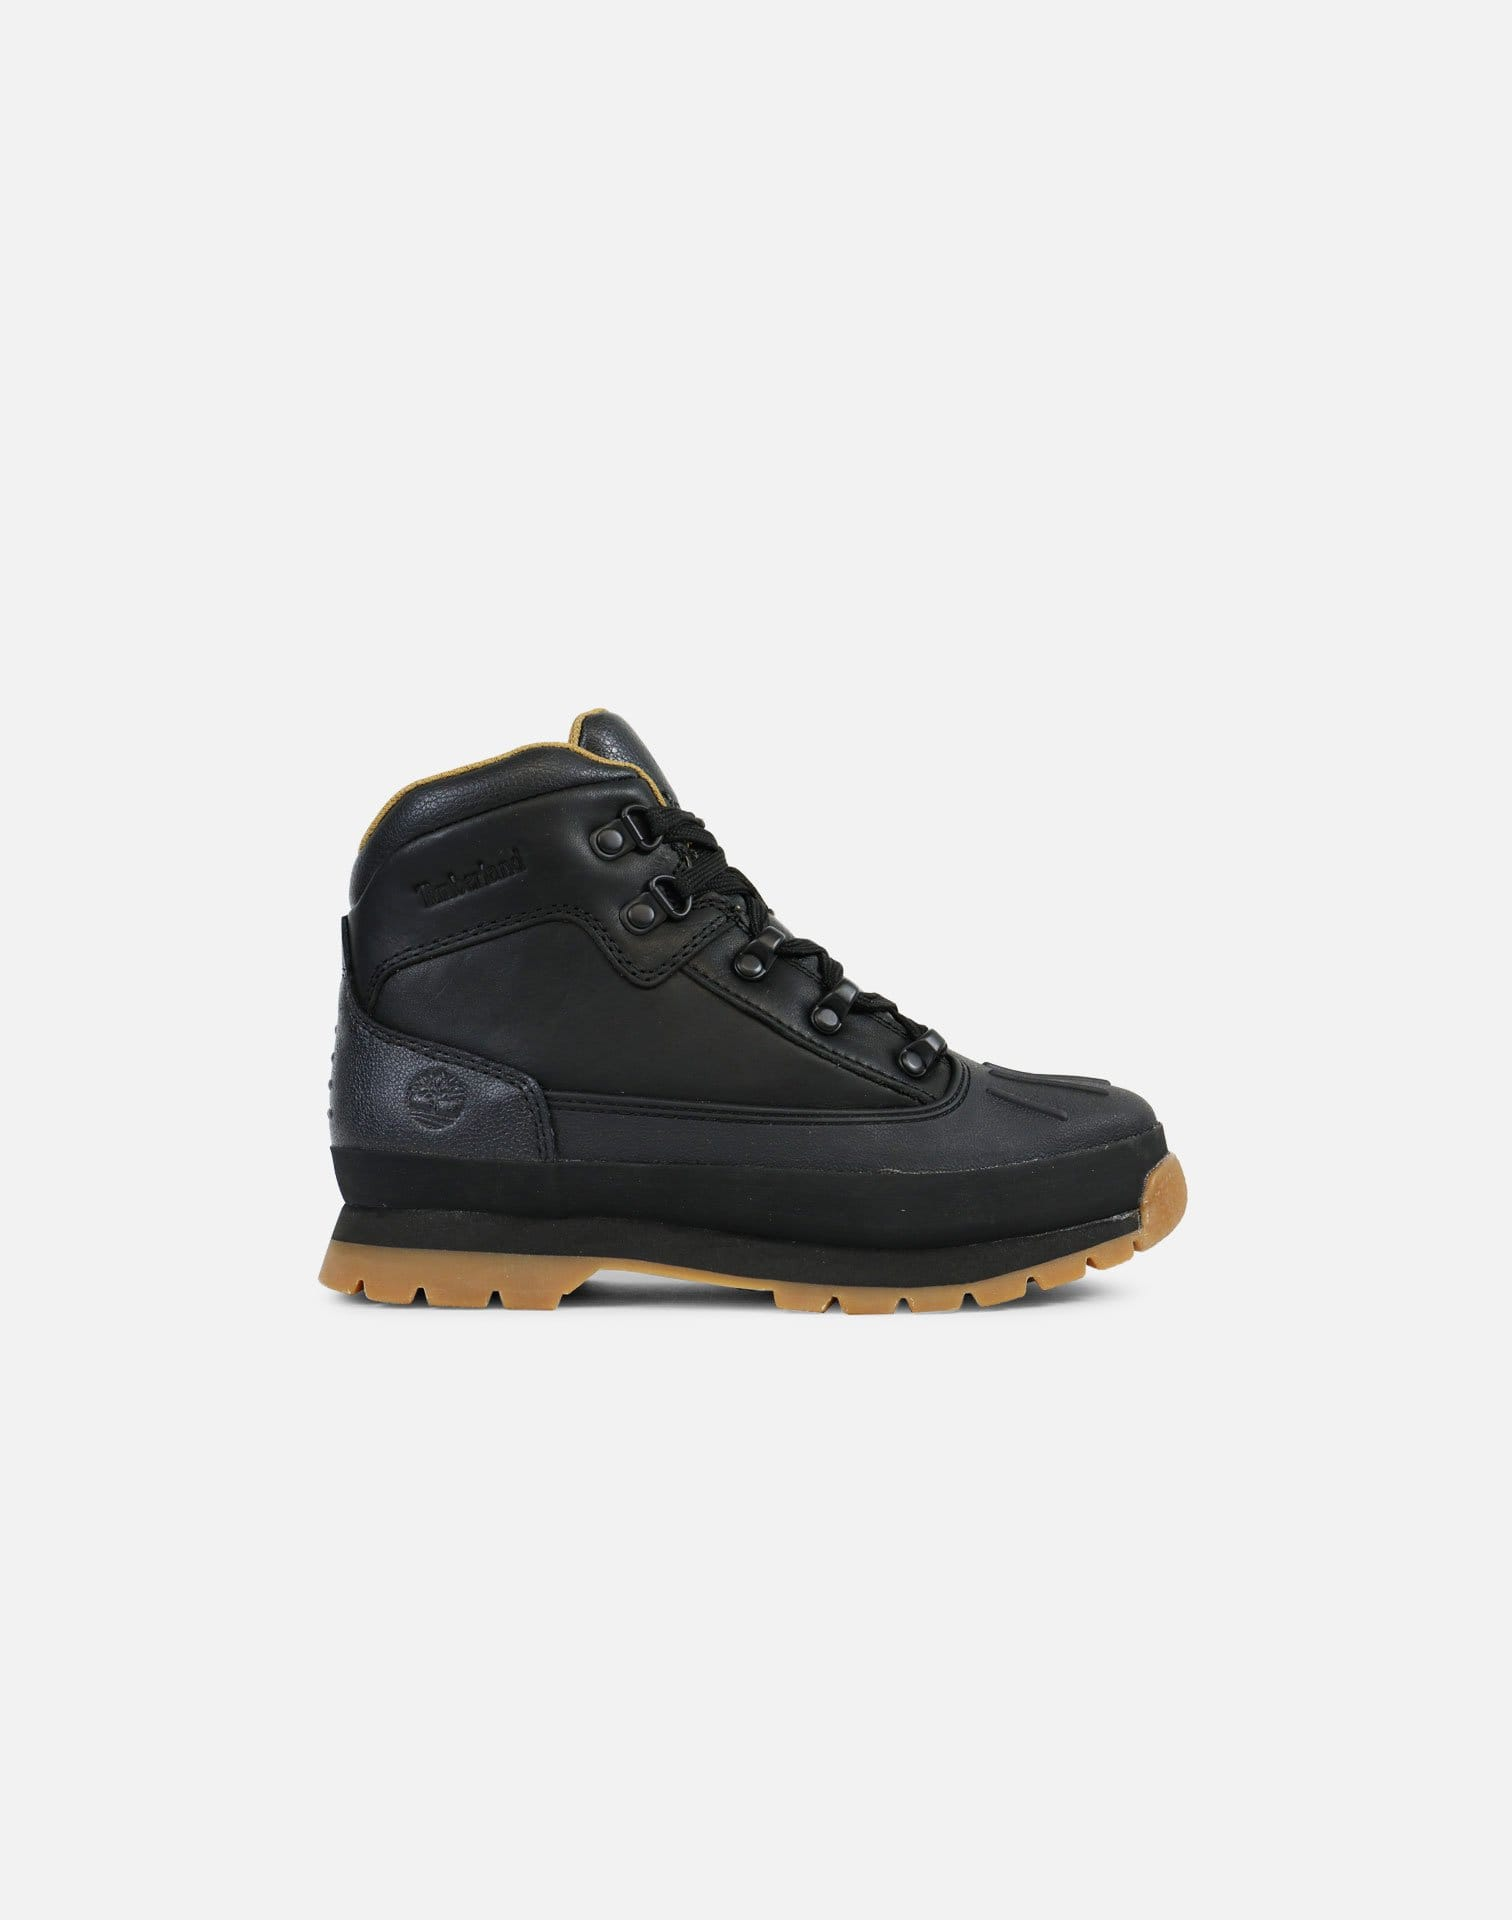 Timberland Shell Toe Euro Hiker Boots Pre-School (Black/Full Grain)